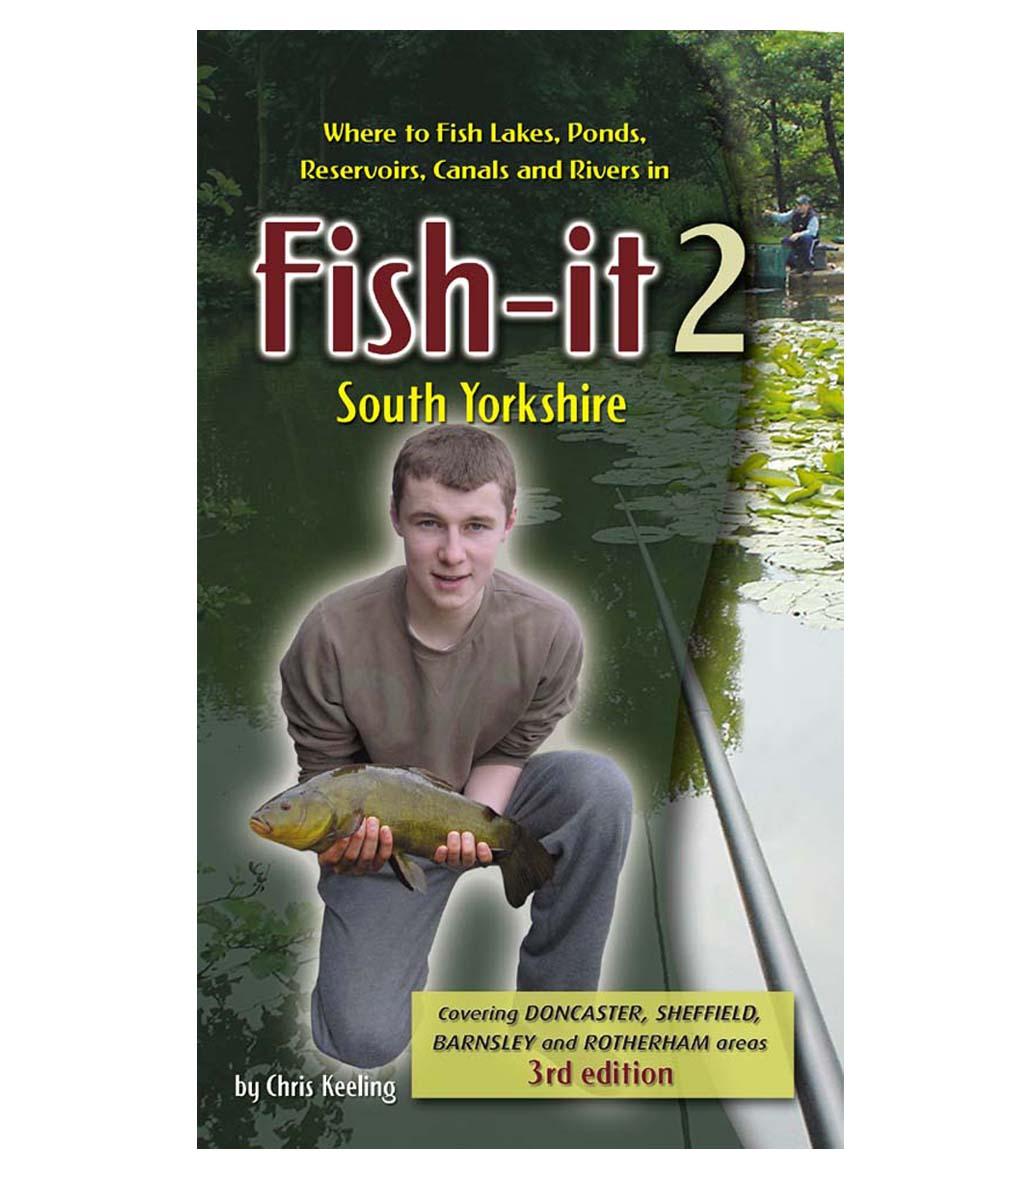 Fish-It 2 South Yorkshire